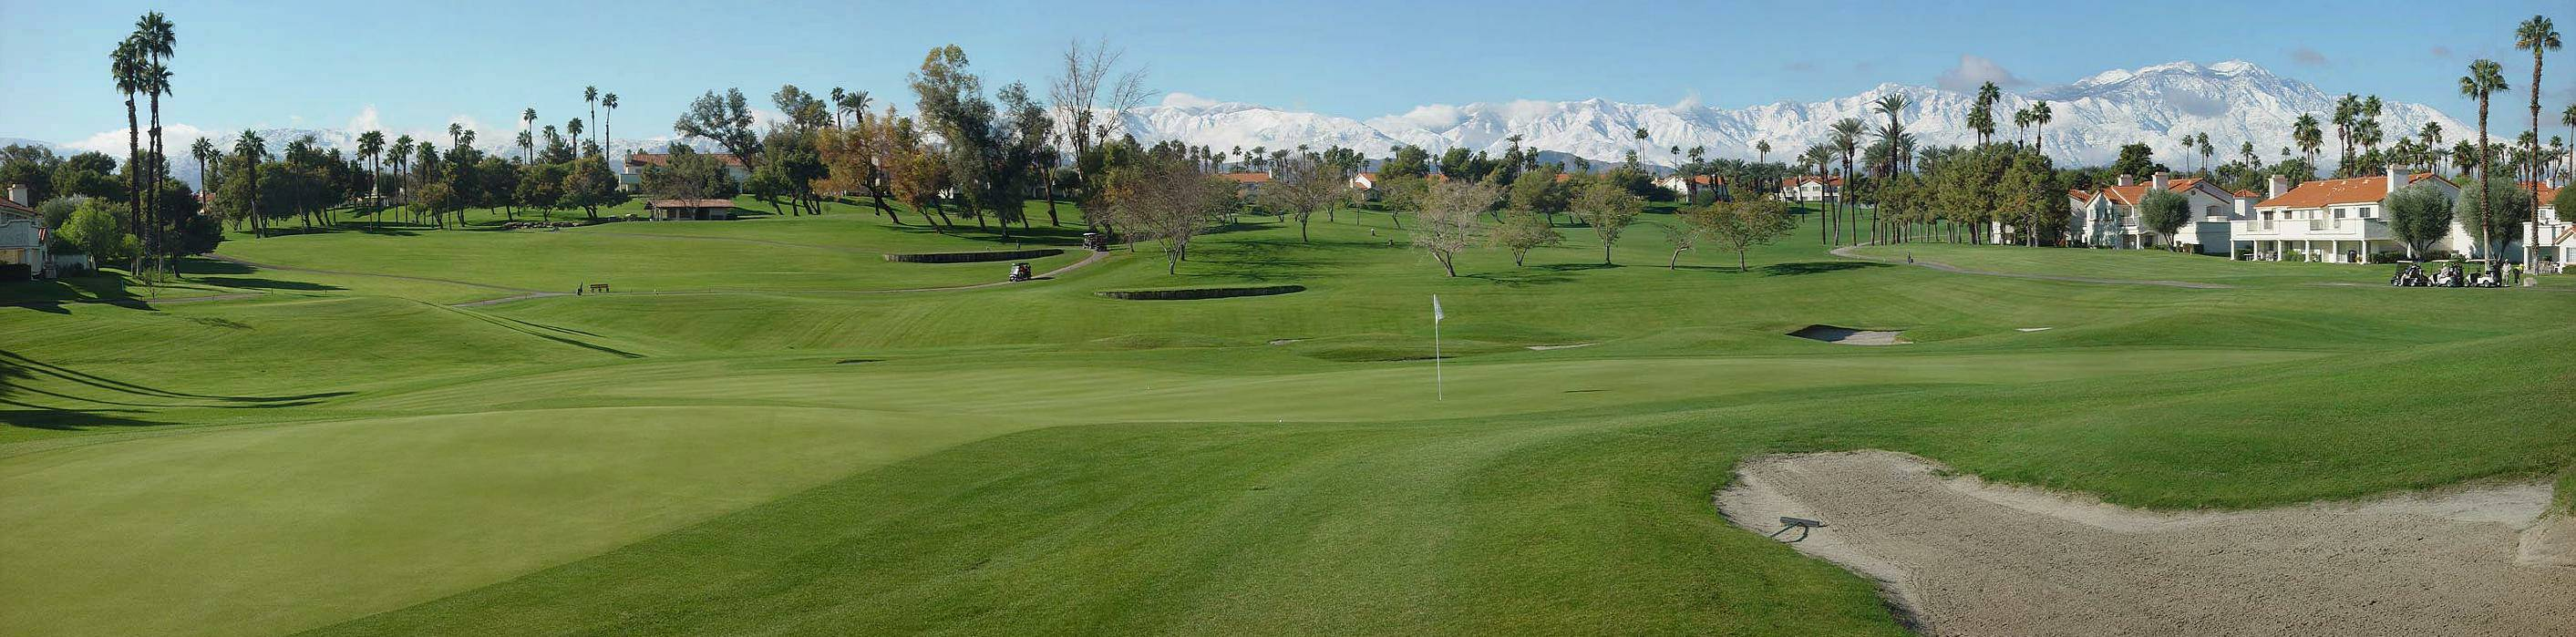 Desert Falls Country Club Private Desert Country Club And Residential Golf Community In Palm Desert Convenient To Palm Springs Ca Excellent Desert Golf Luxury Homes And Wonderful Golf And Other Social